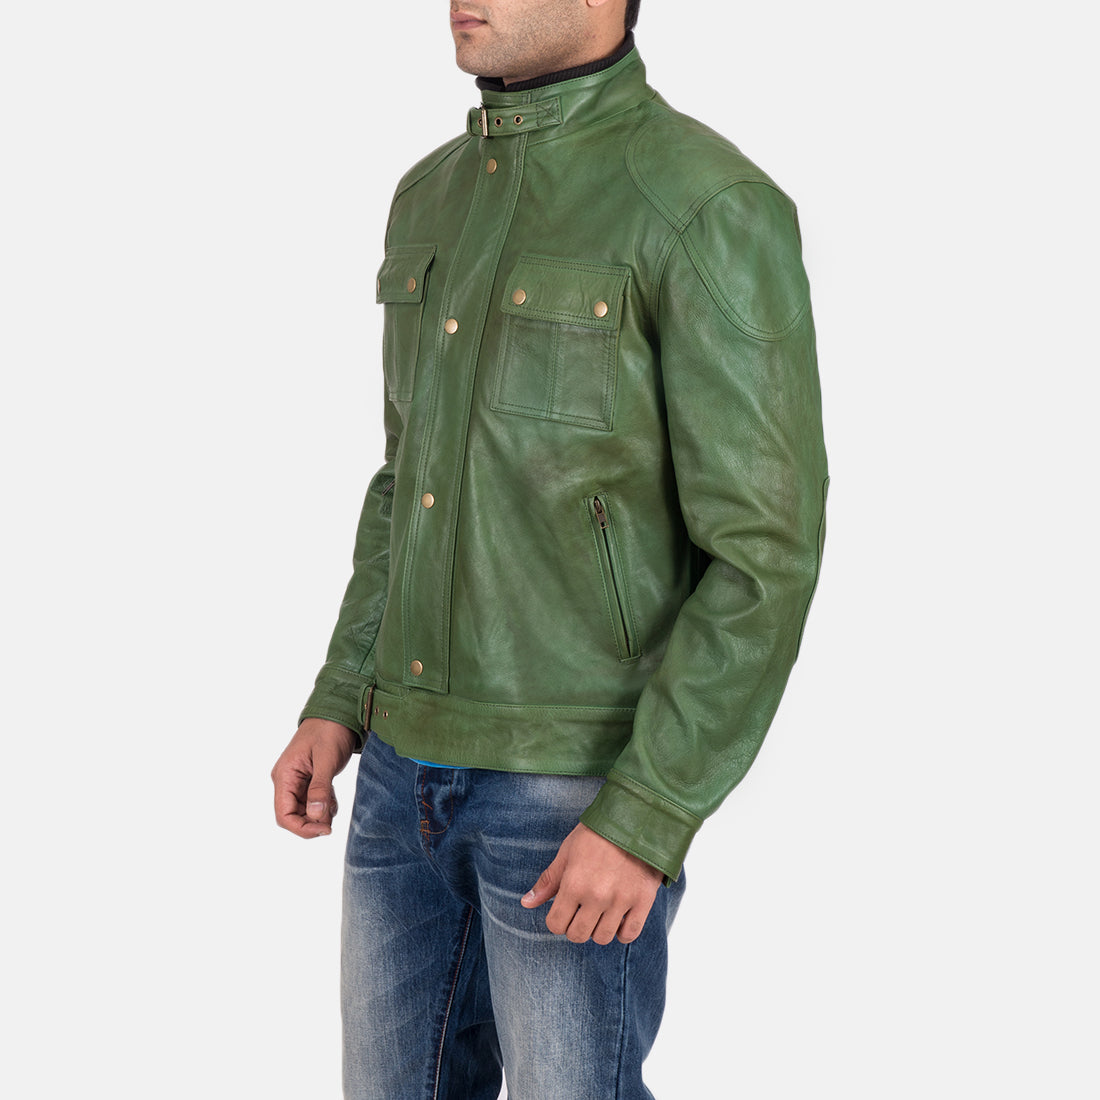 Krypton Distressed Green Leather Jacket - Get Custom Leather Jackets